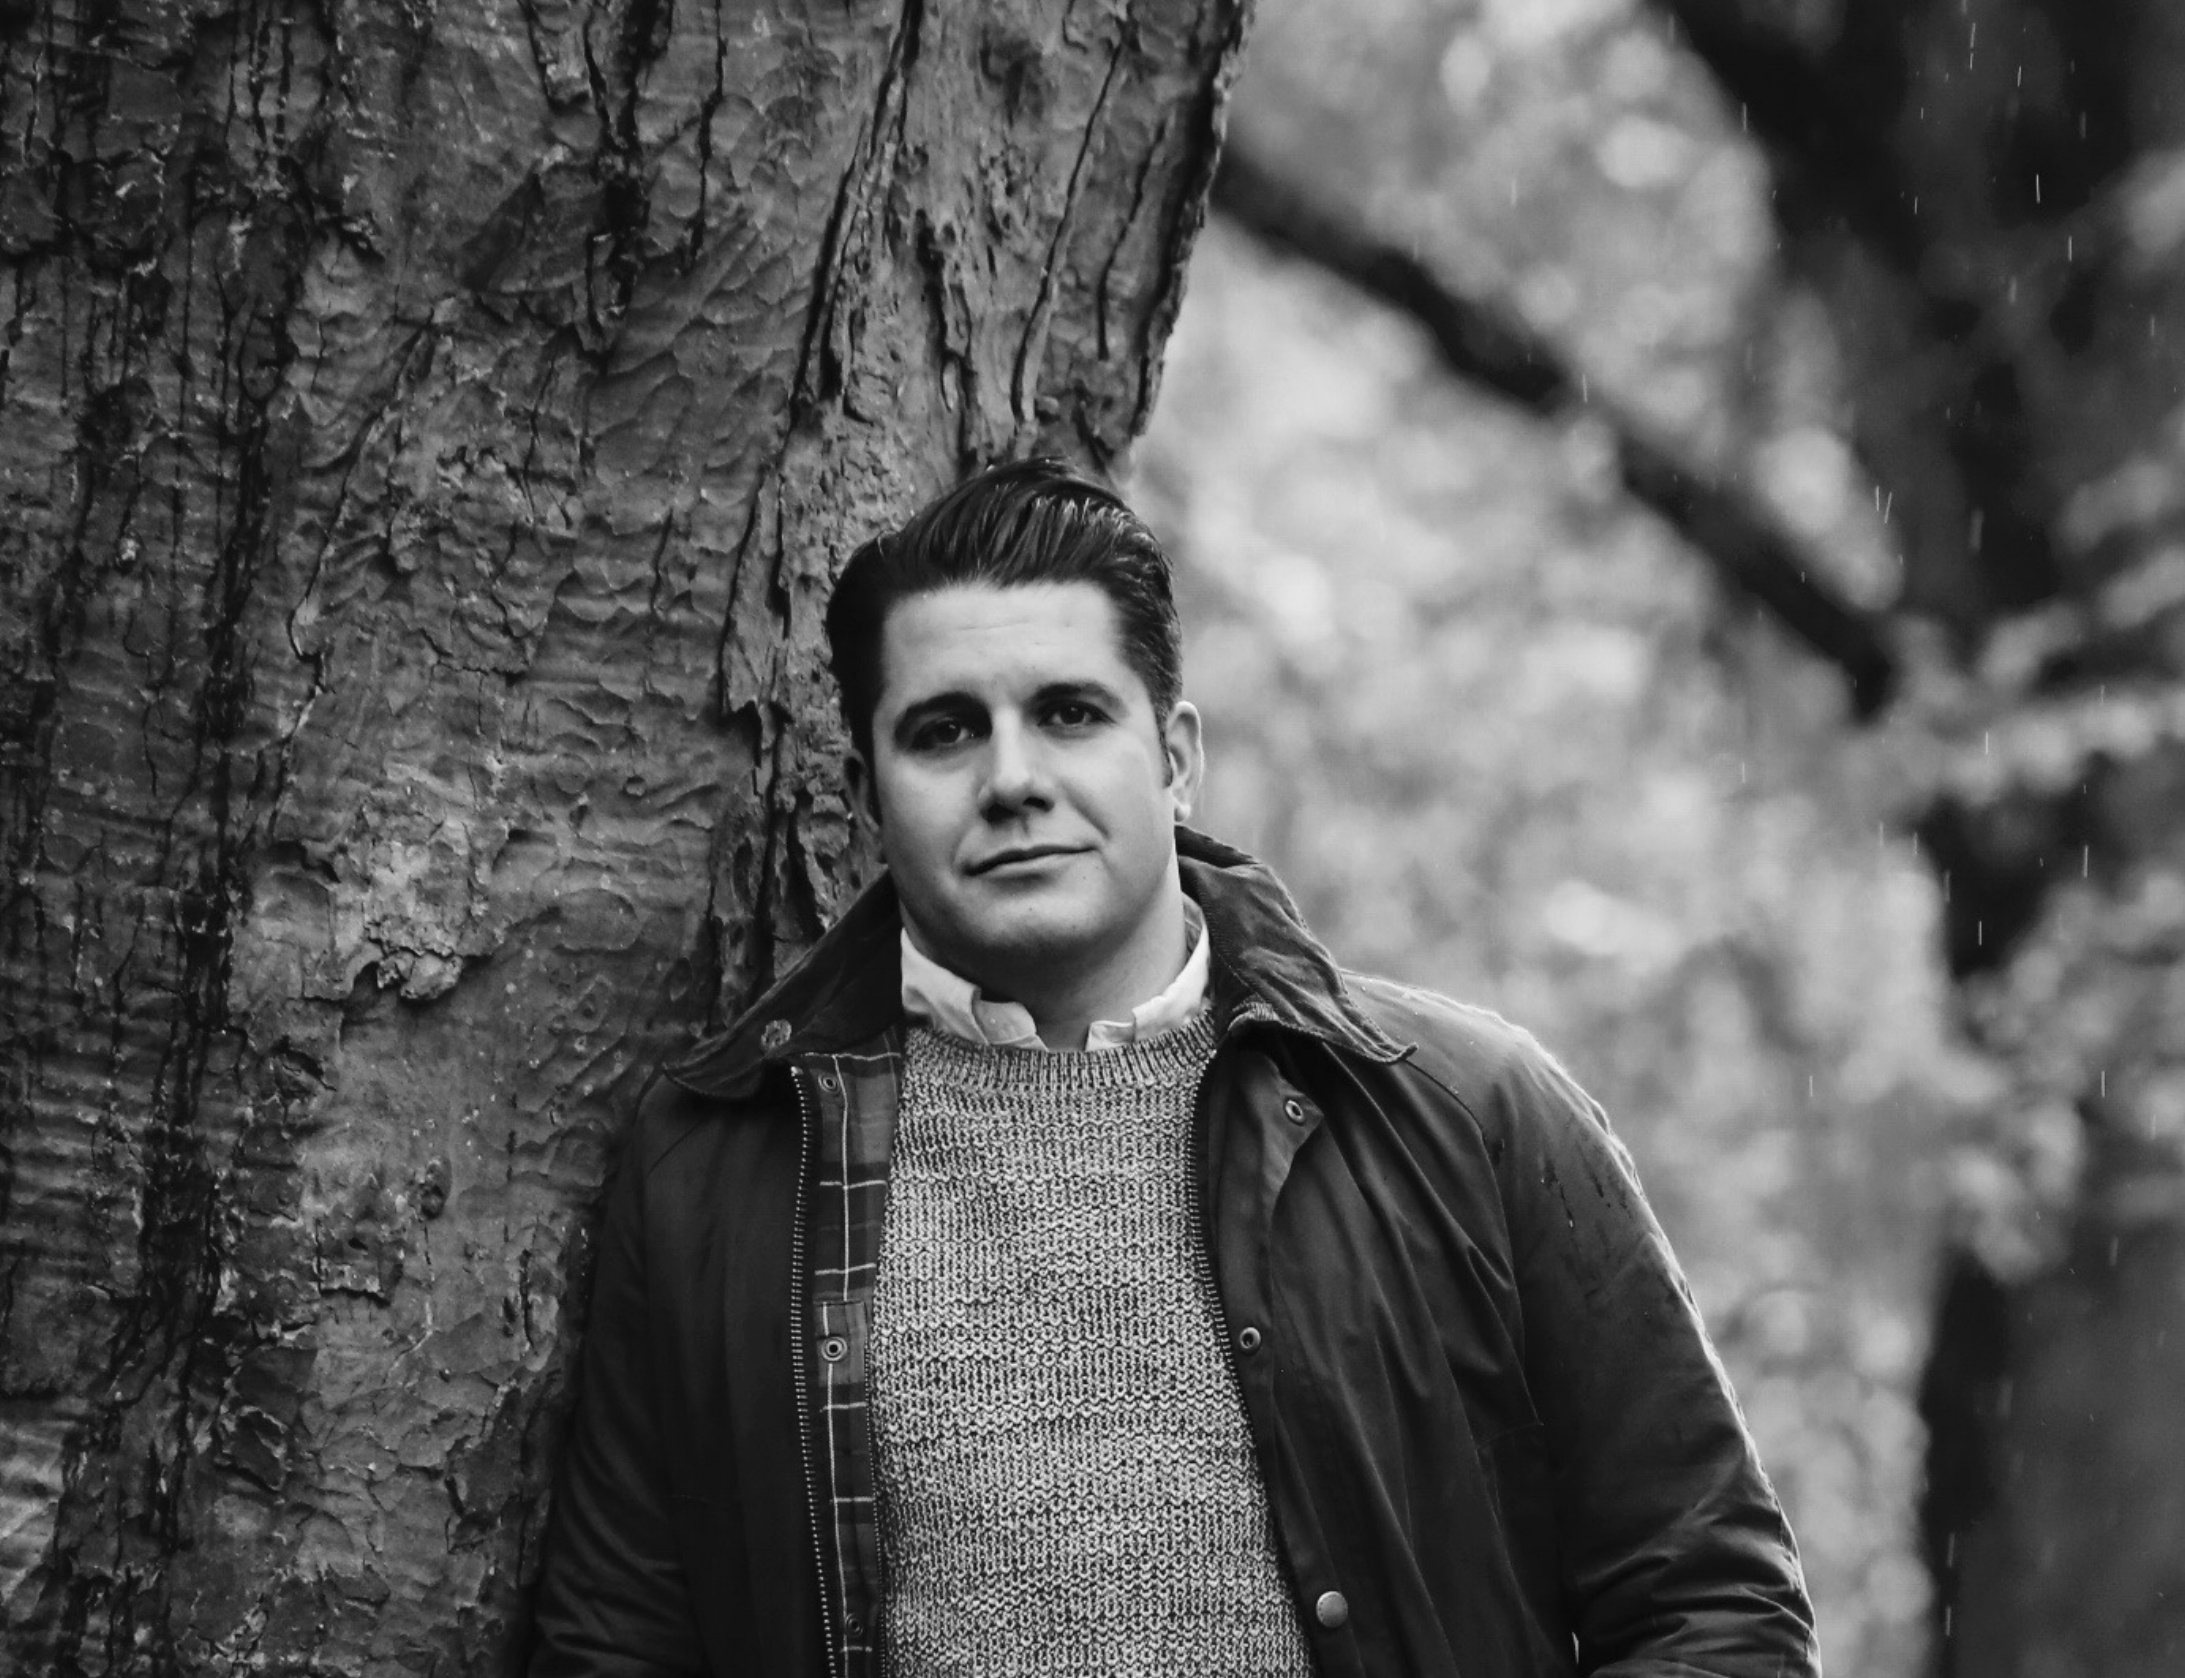 Andrew Wood - Andrew is a Bristol based novelist and author of 'Hanham', the amazing true story of one family's plight during the